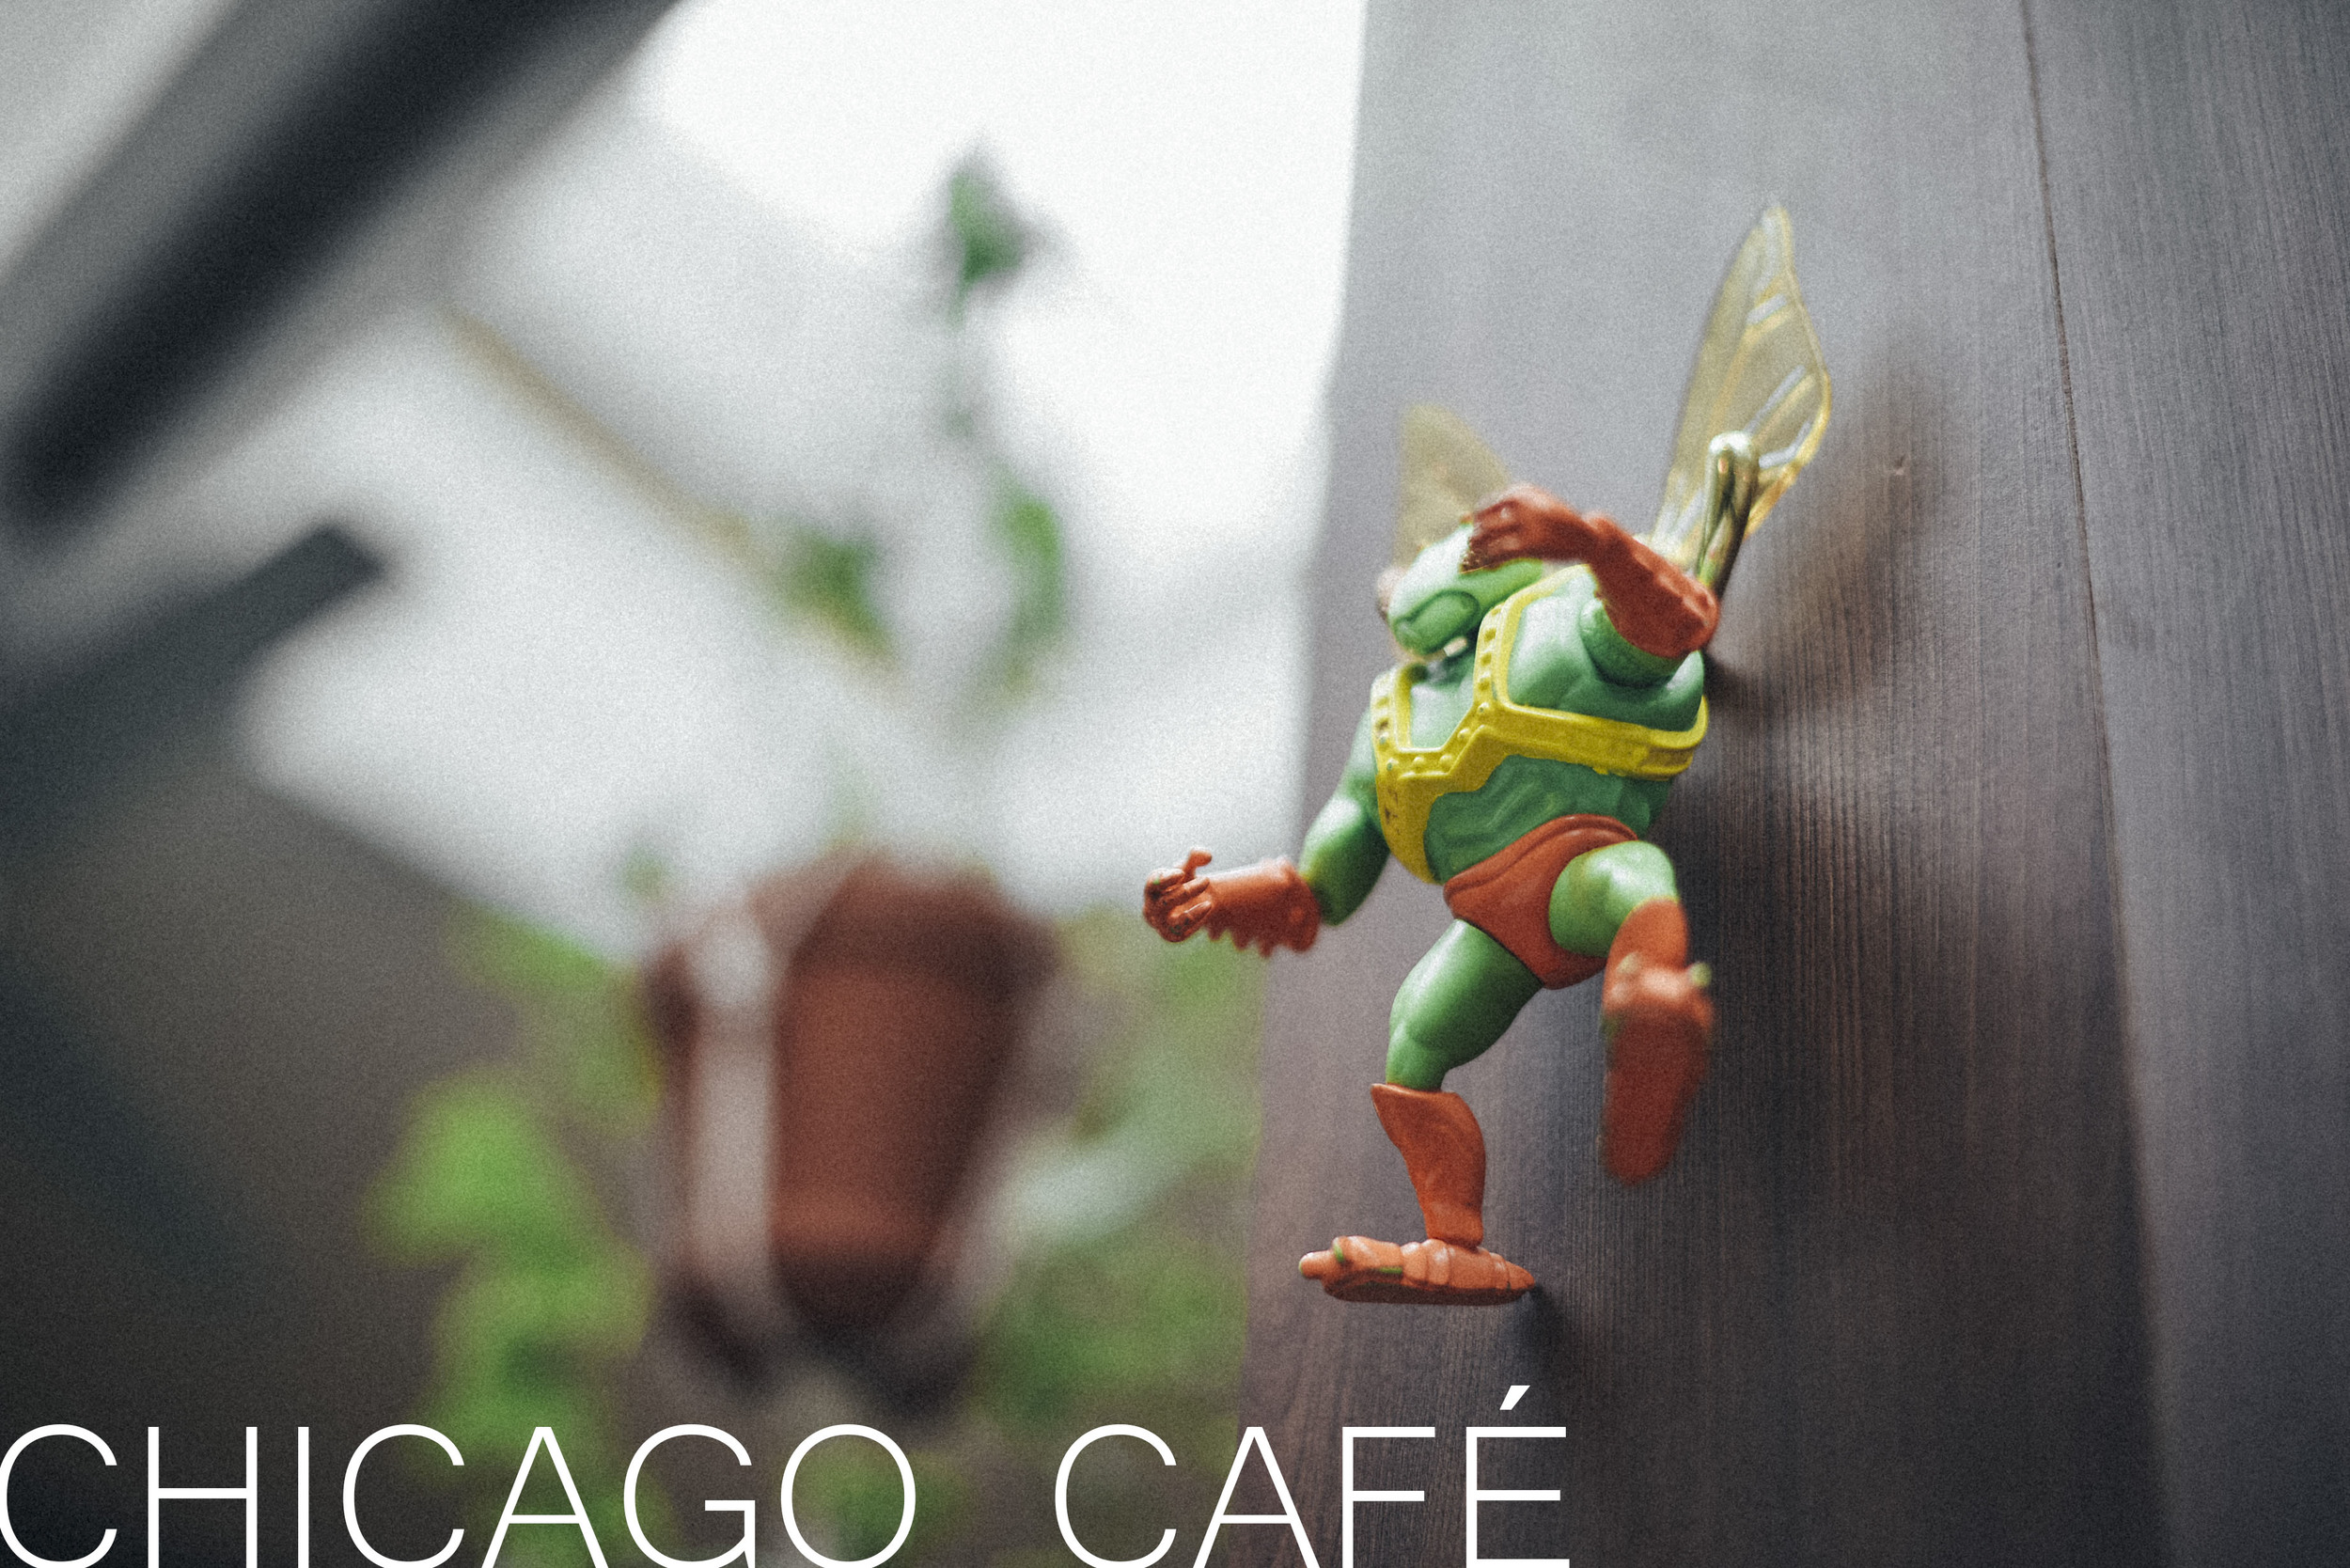 CHICAGO café brussels food and drink best place guide foodie